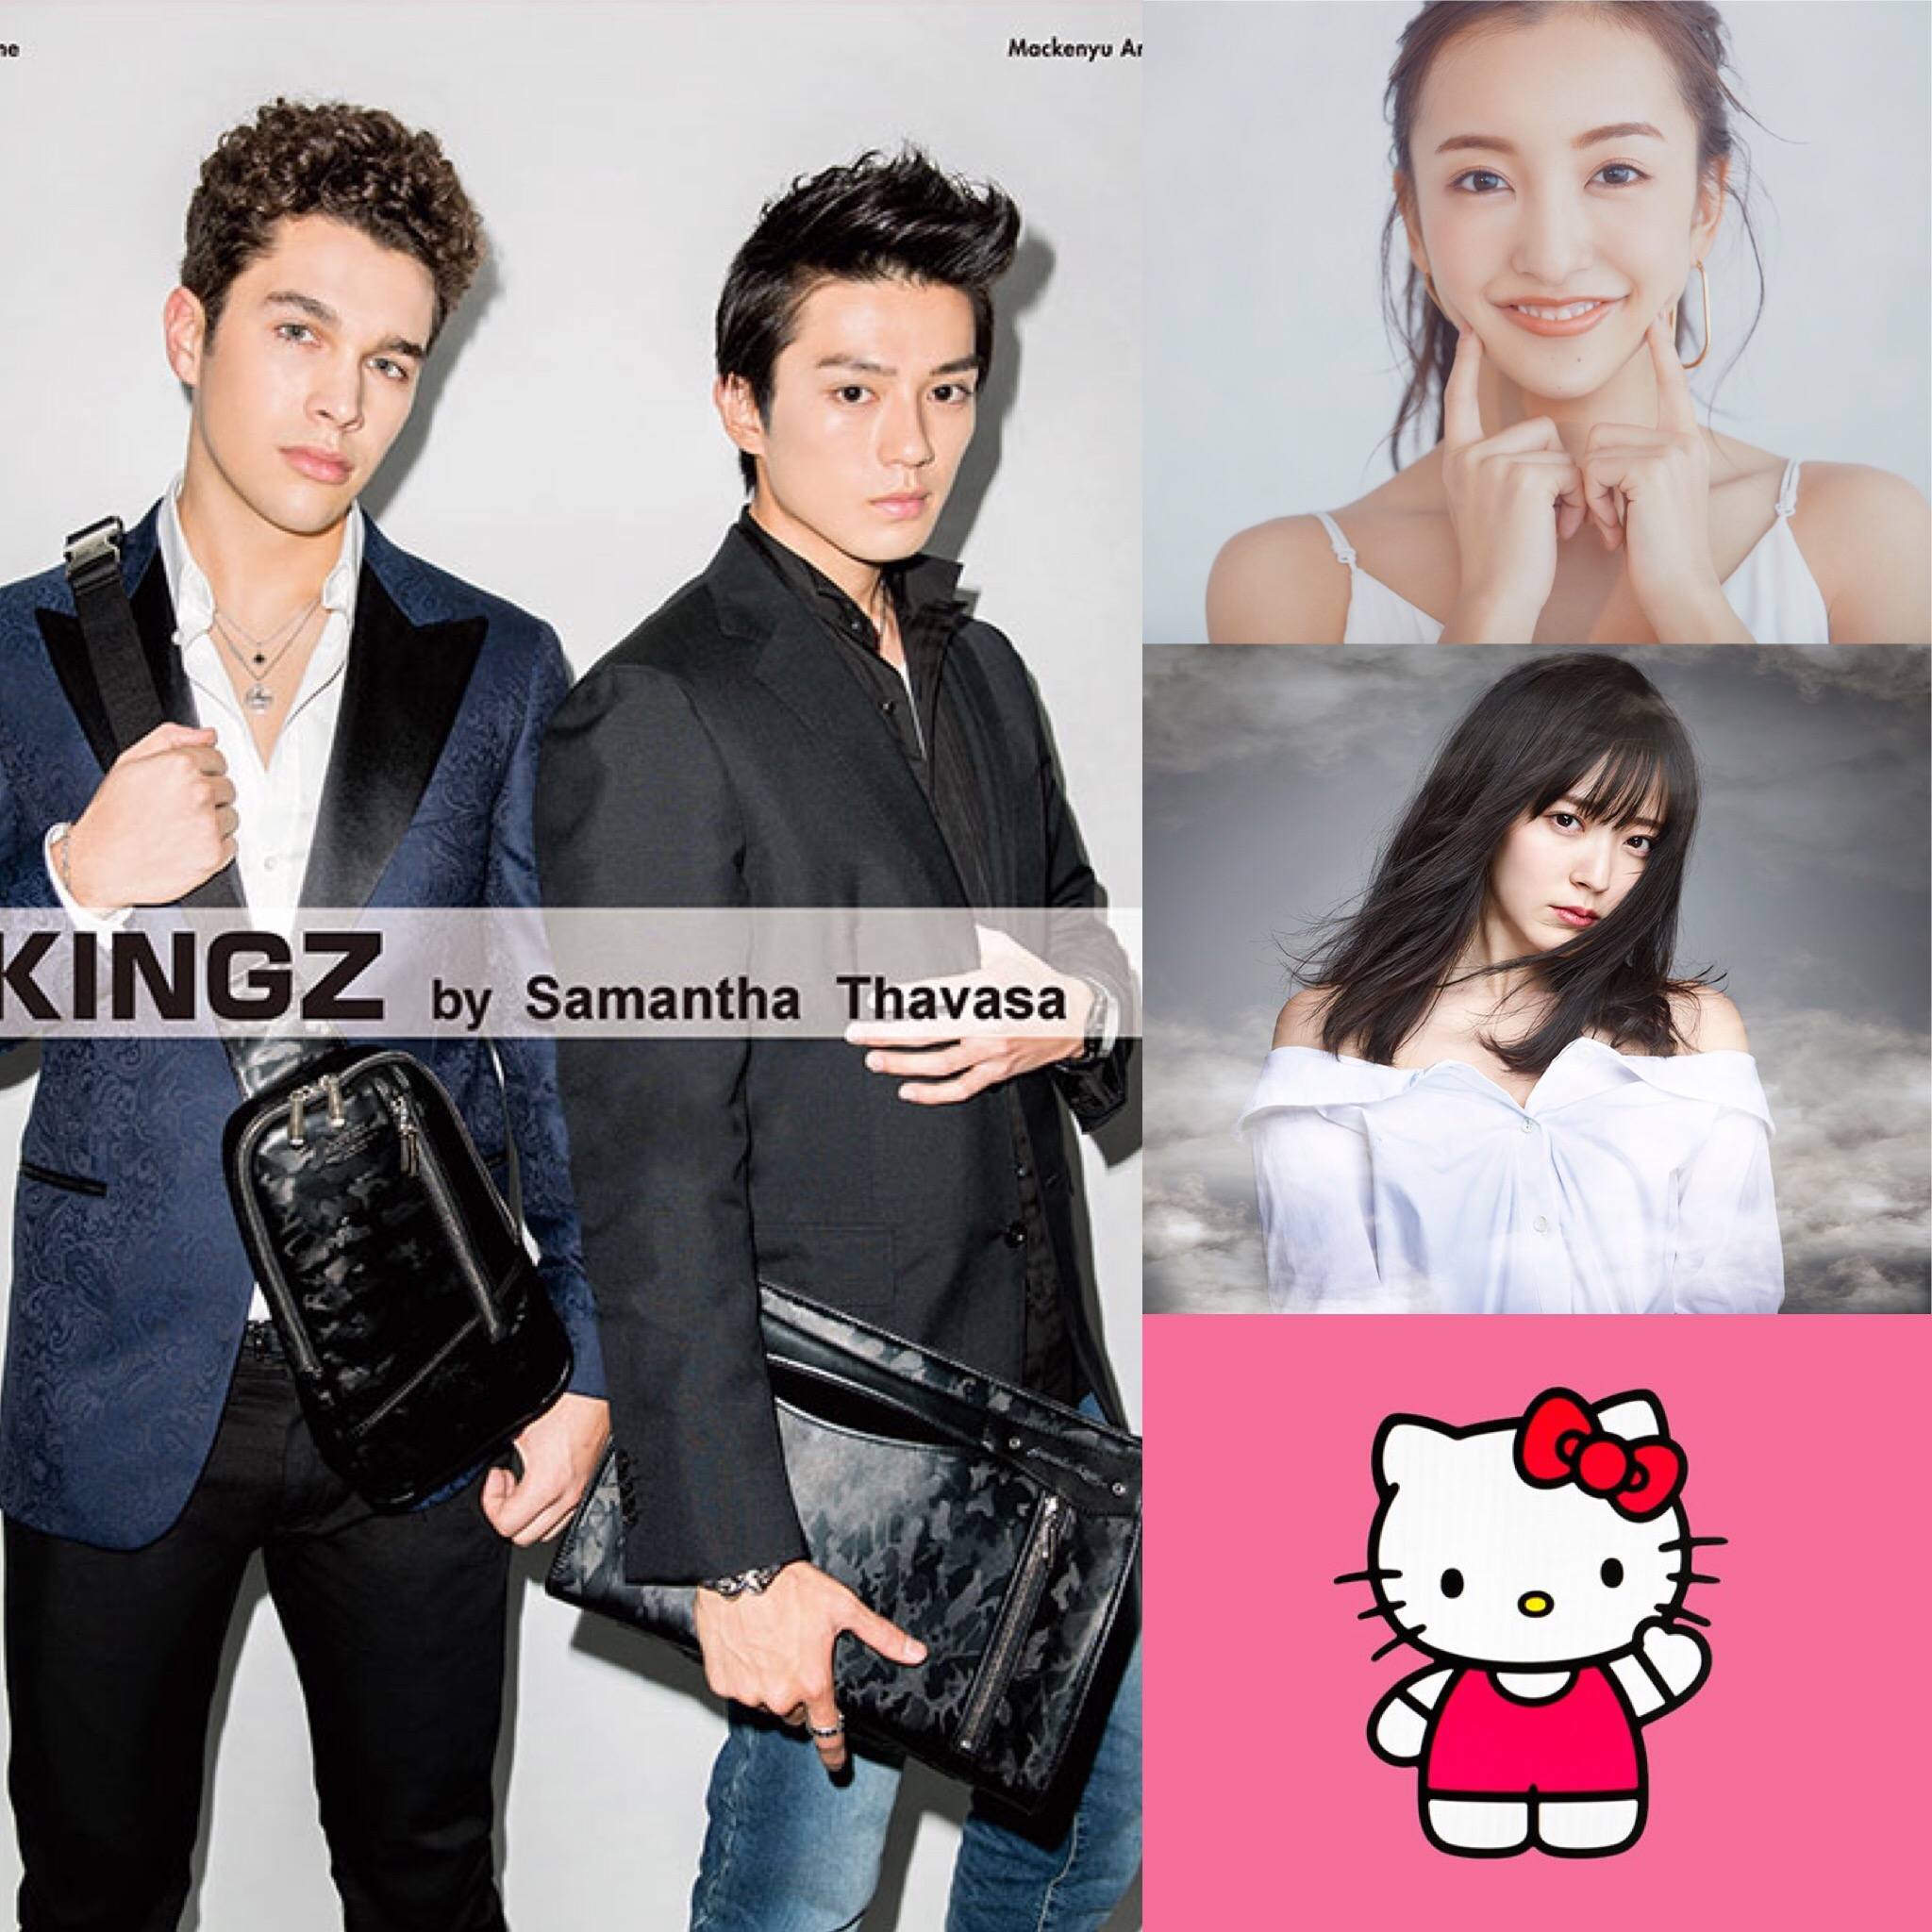 Mackenyu, Tomomi Itano, Austin Mahone, Airi Suzuki, Hello Kitty, & more team up for Samantha Thavasa's 25th anniversary.